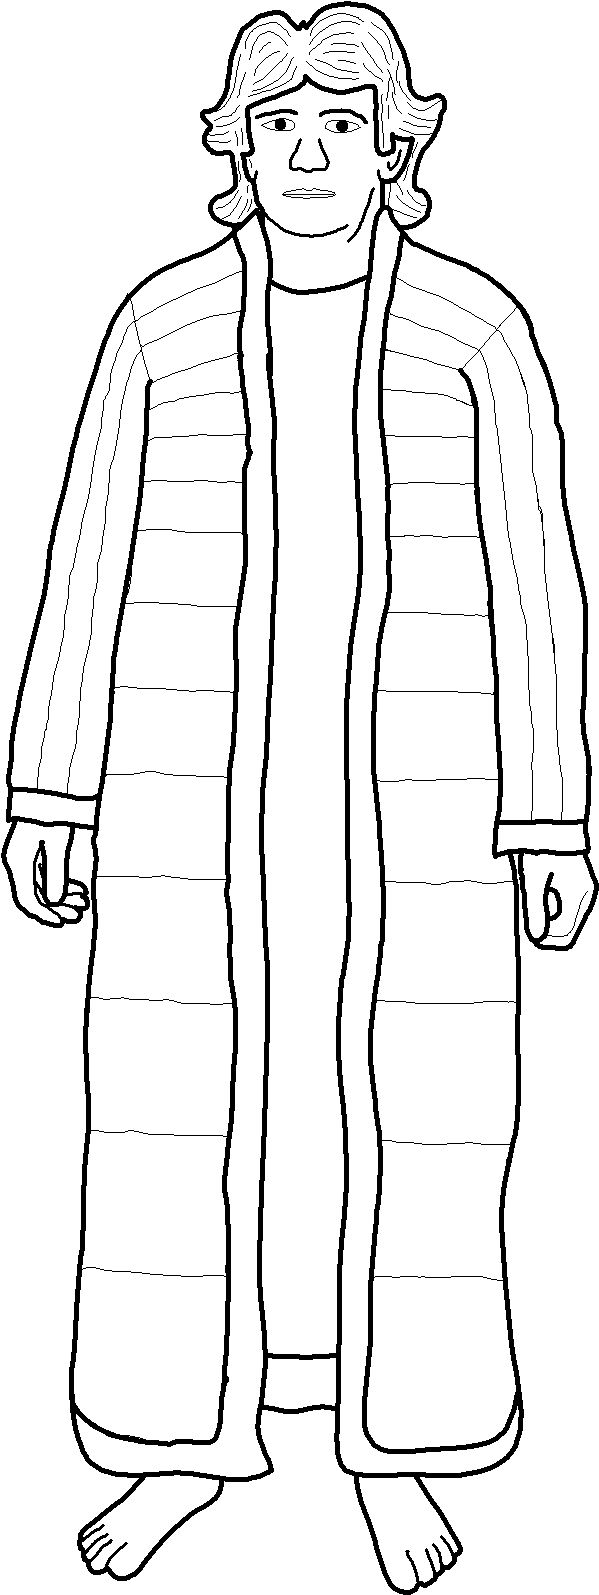 Free coloring pages joseph coat many colors - Joseph Sold To Slavery Lesson And Activities At Http Www Sundayschoolresources